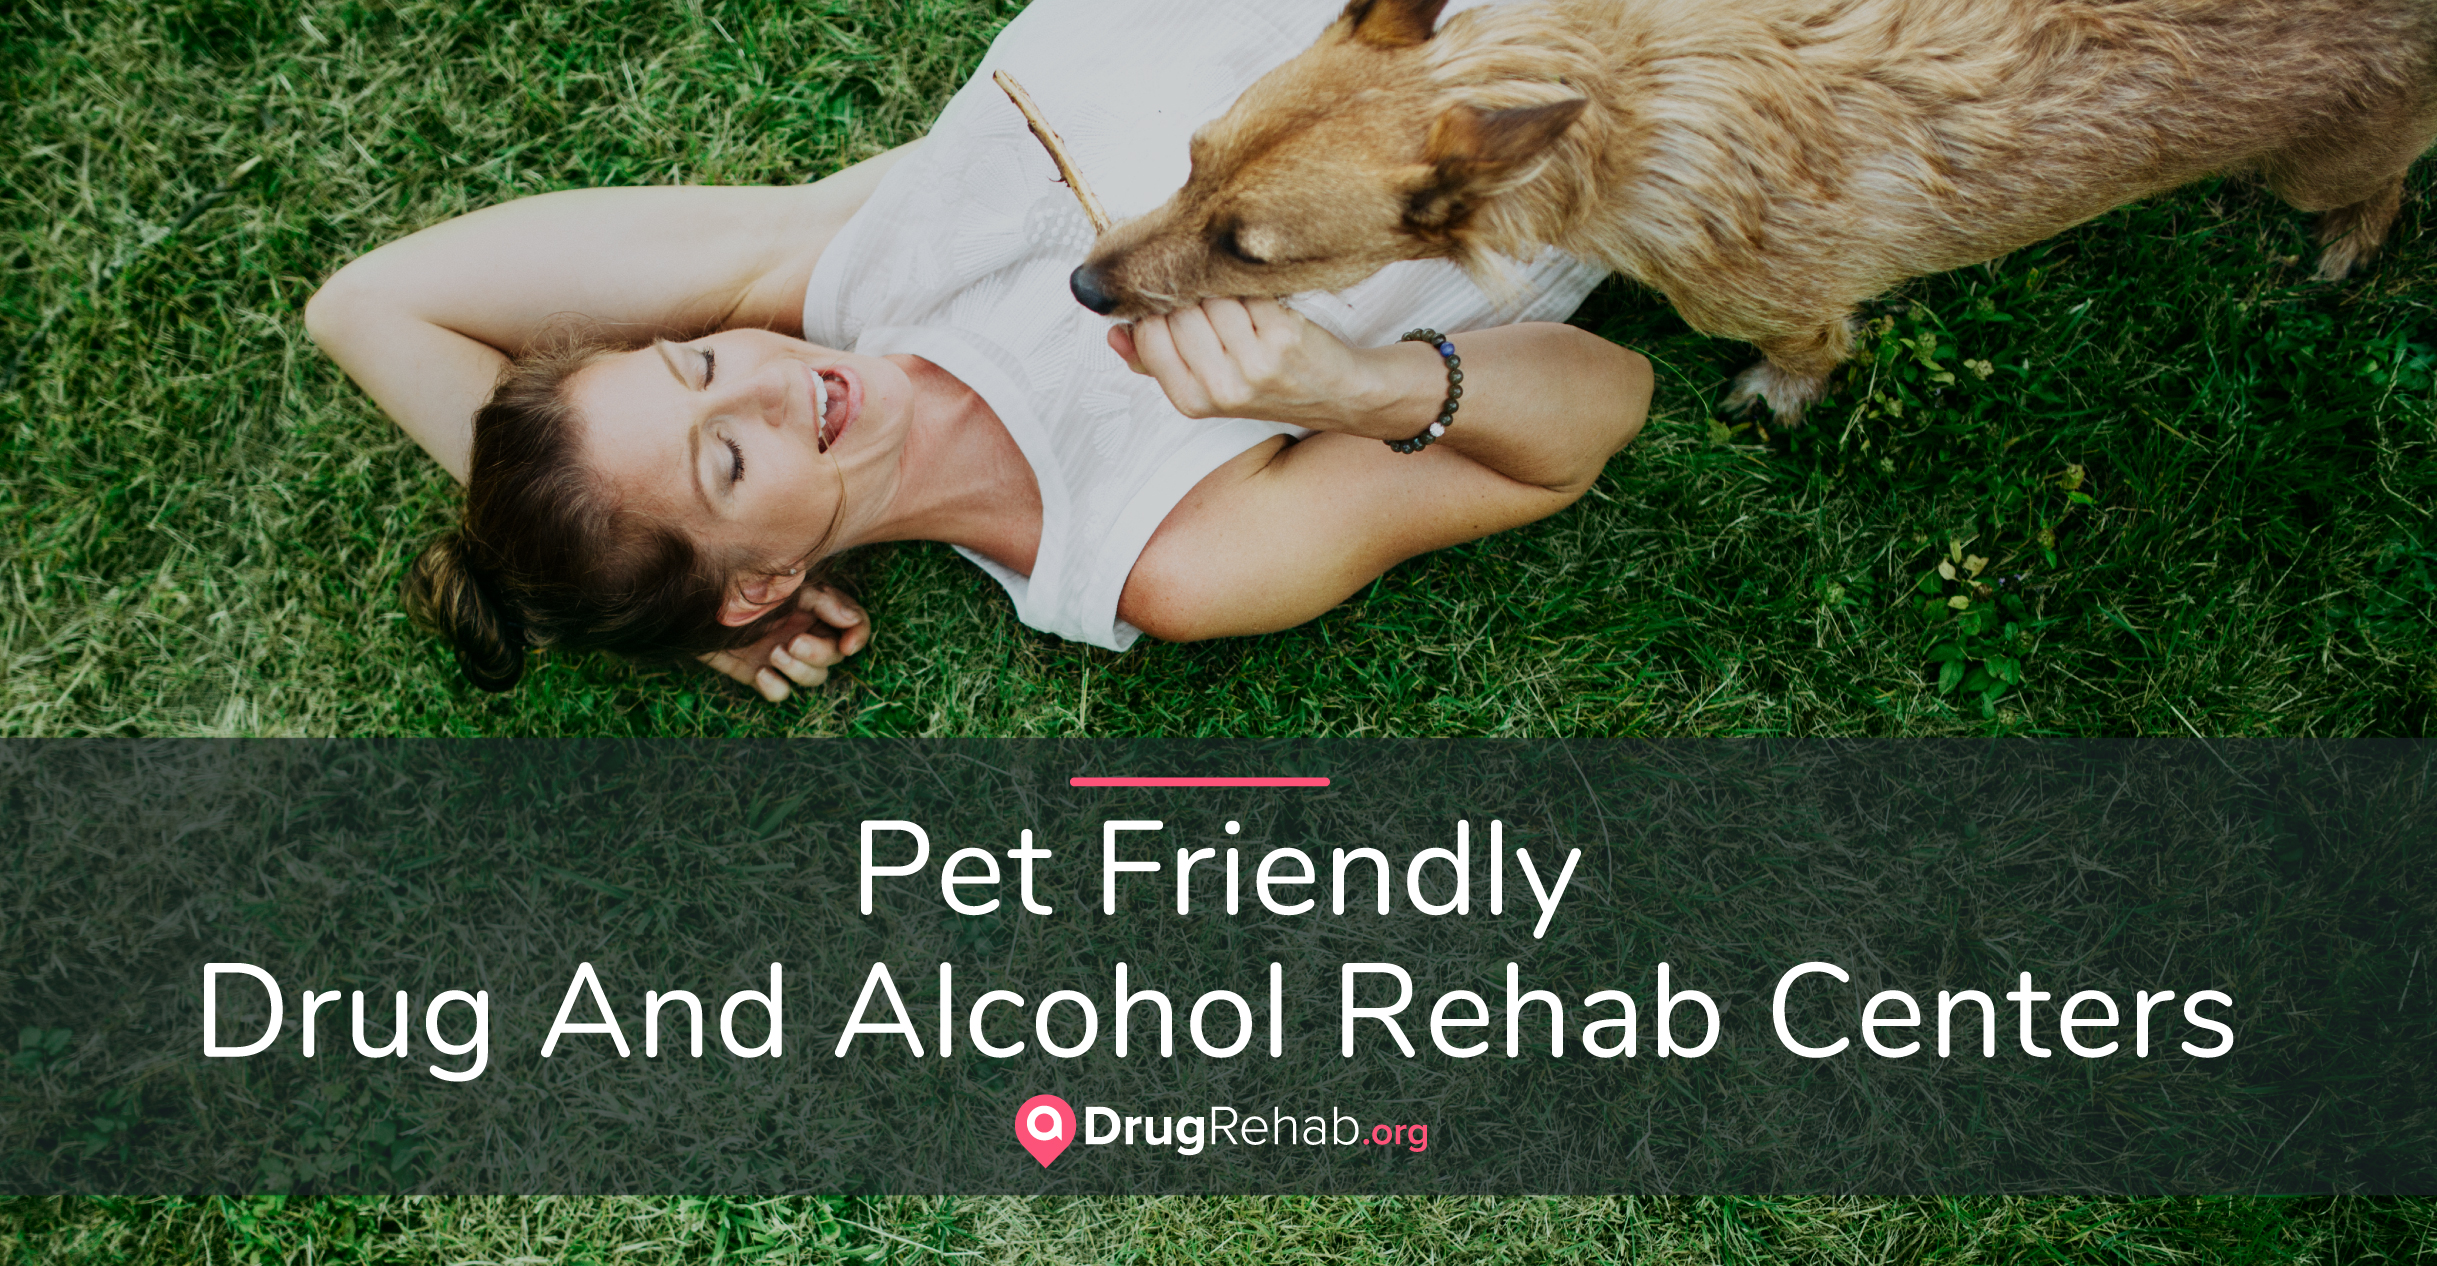 Pet Friendly Drug And Alcohol Rehab Centers